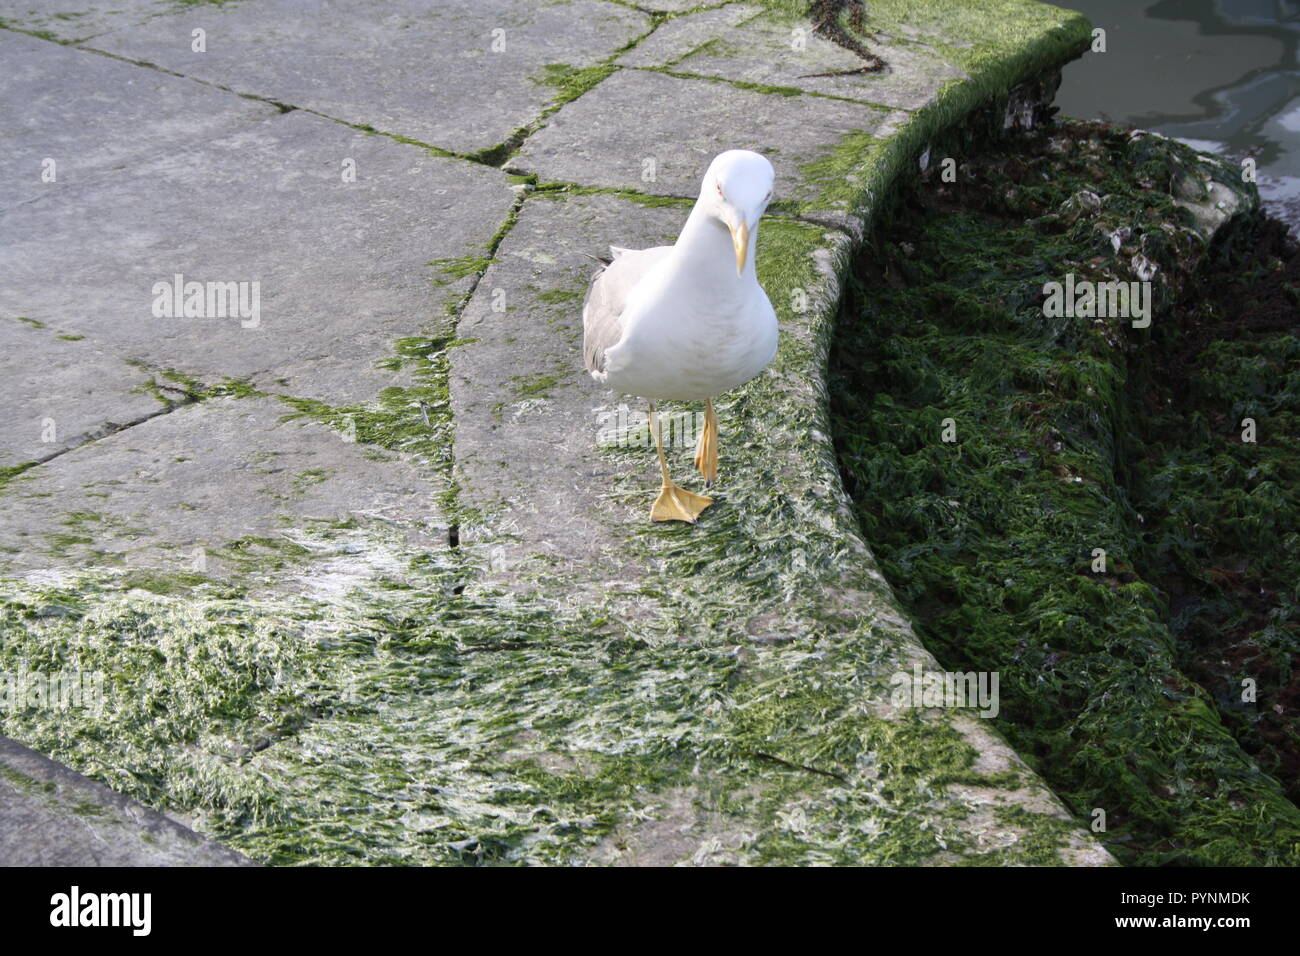 The seagull wonders what's the purpose of the garbage. - Stock Image